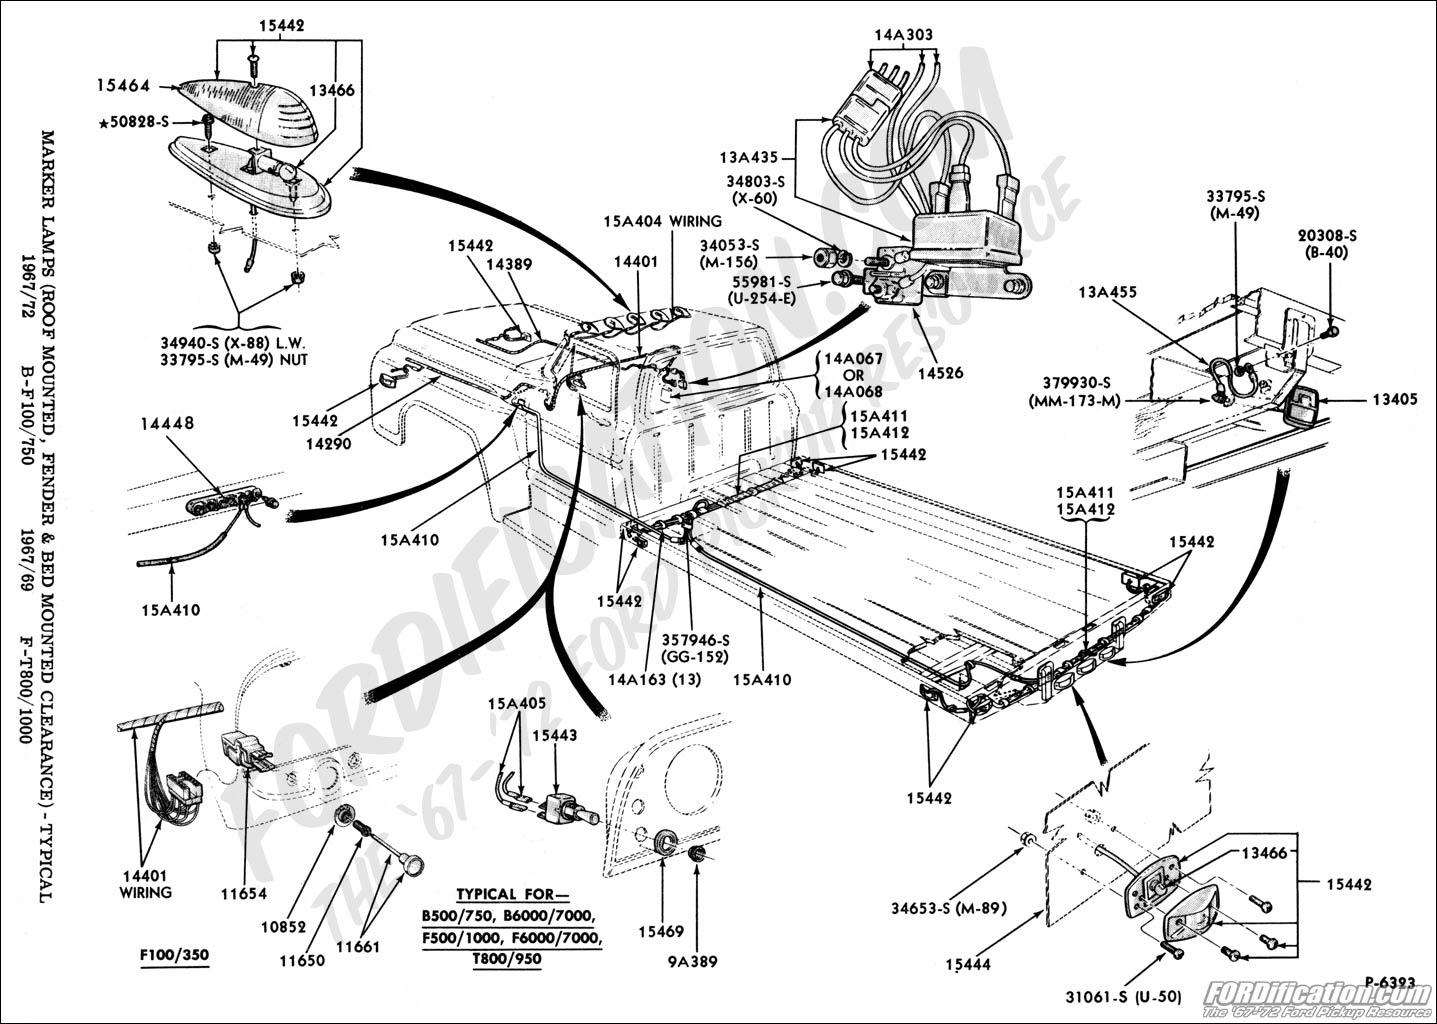 2009 Ford F 150 Trailer Wiring Diagram Library 350 Truck Technical Drawings And Schematics Section I F350